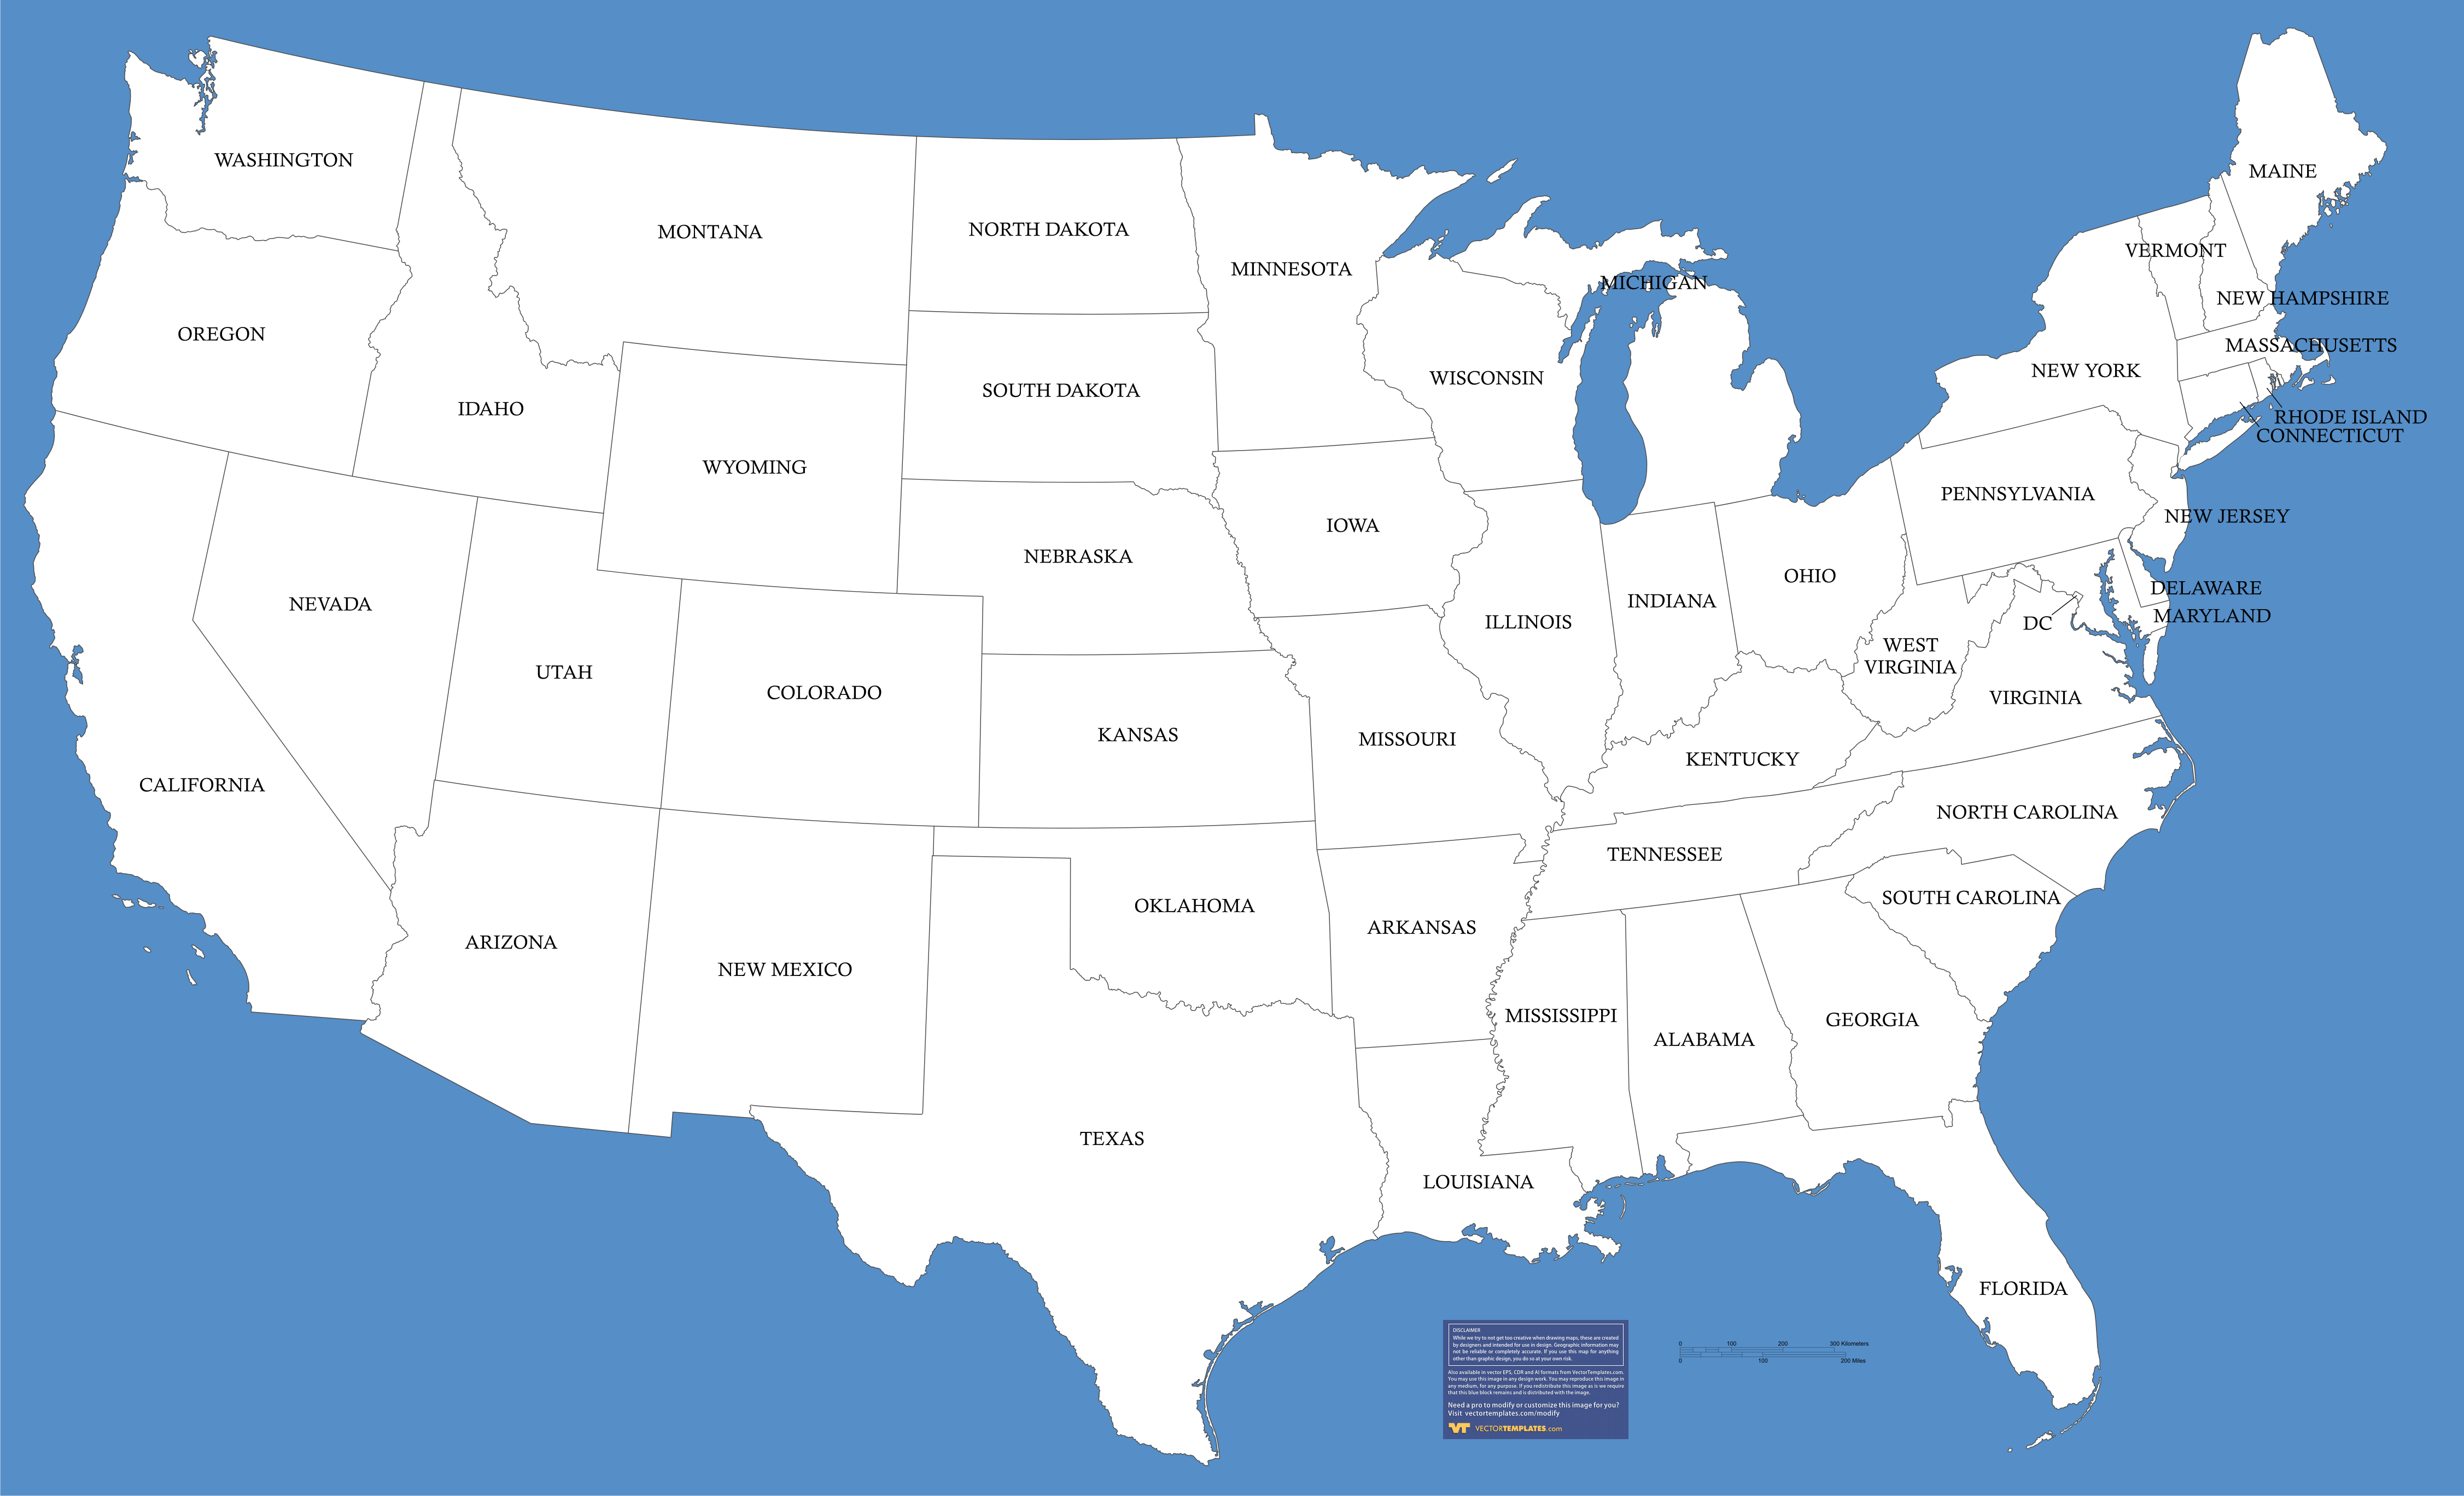 Select From A Variety Of USA State Maps Including USA Outline Maps - Free editable us map for powerpoint